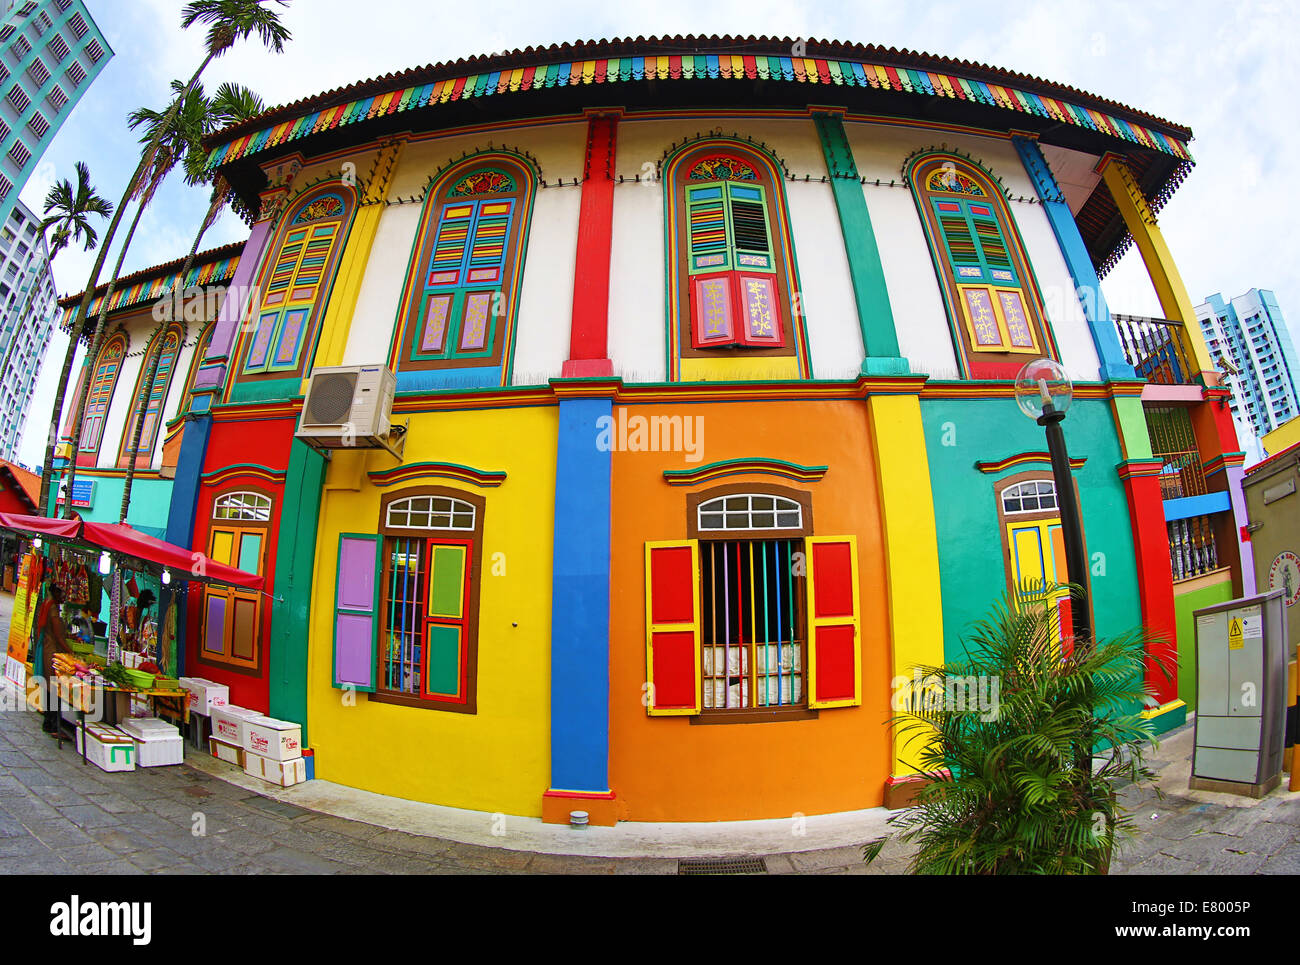 traditional rainbow coloured house with colourful windows